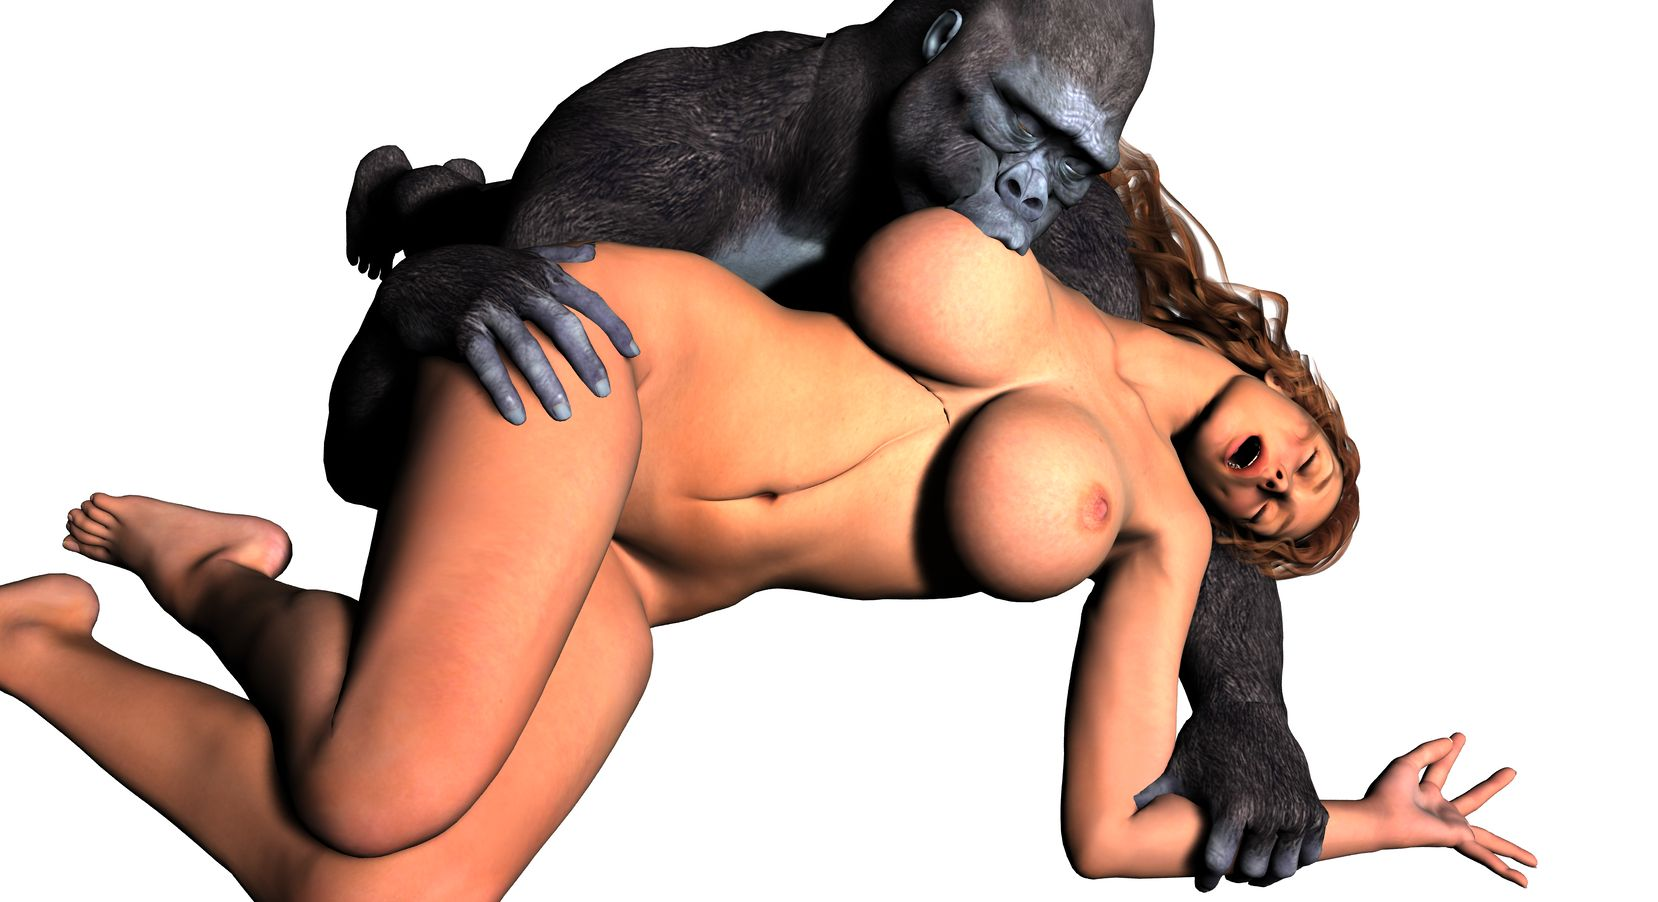 Girls nude get fucked by apes, erotic stories free professional